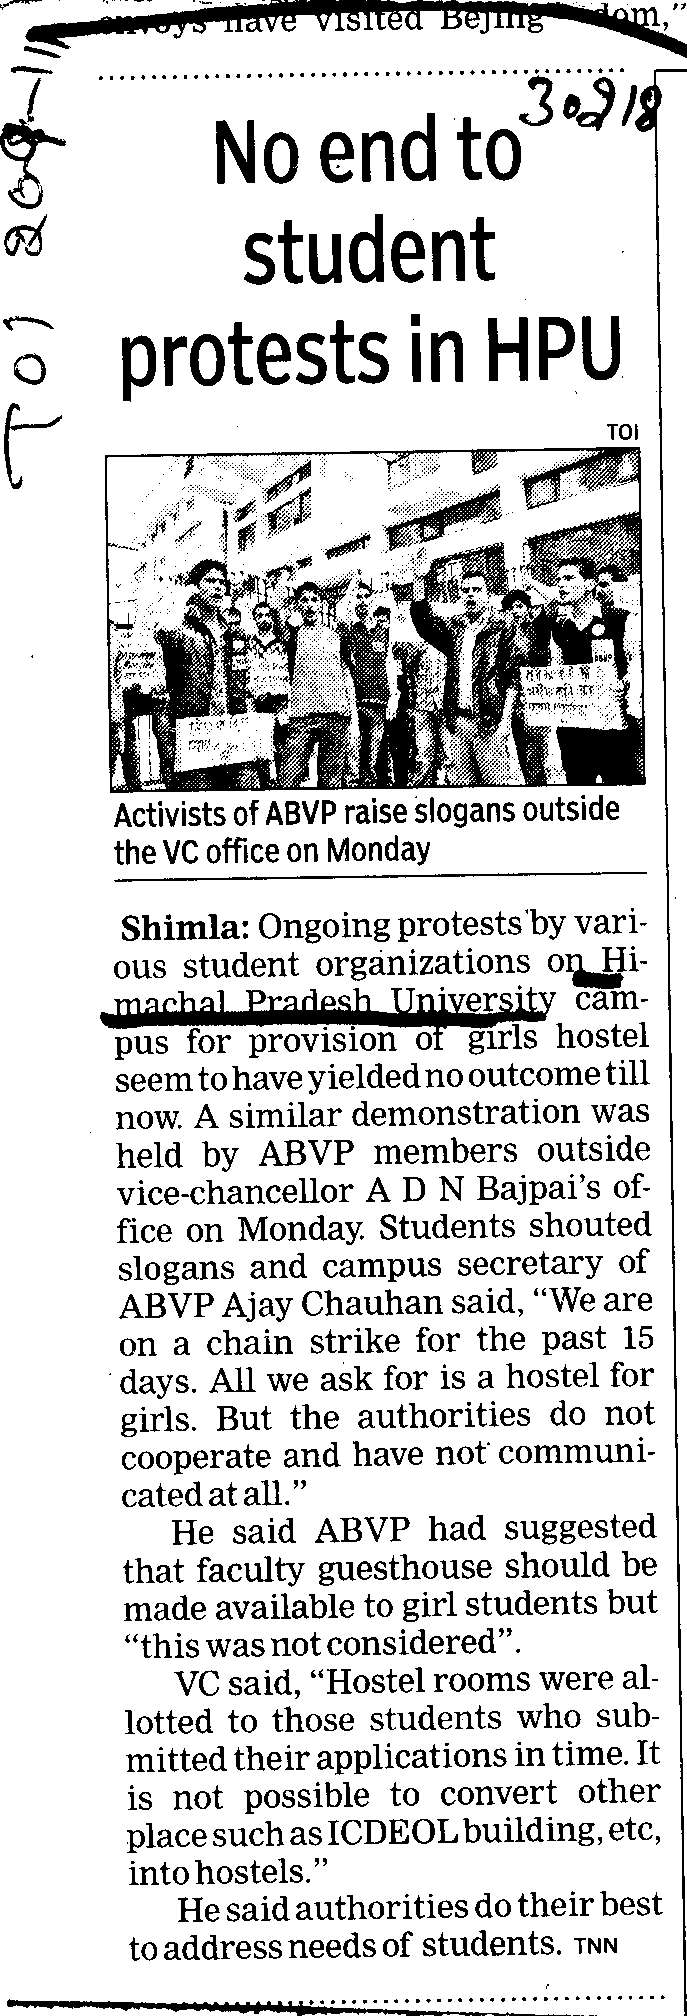 No end to student protest in HPU (Himachal Pradesh University)